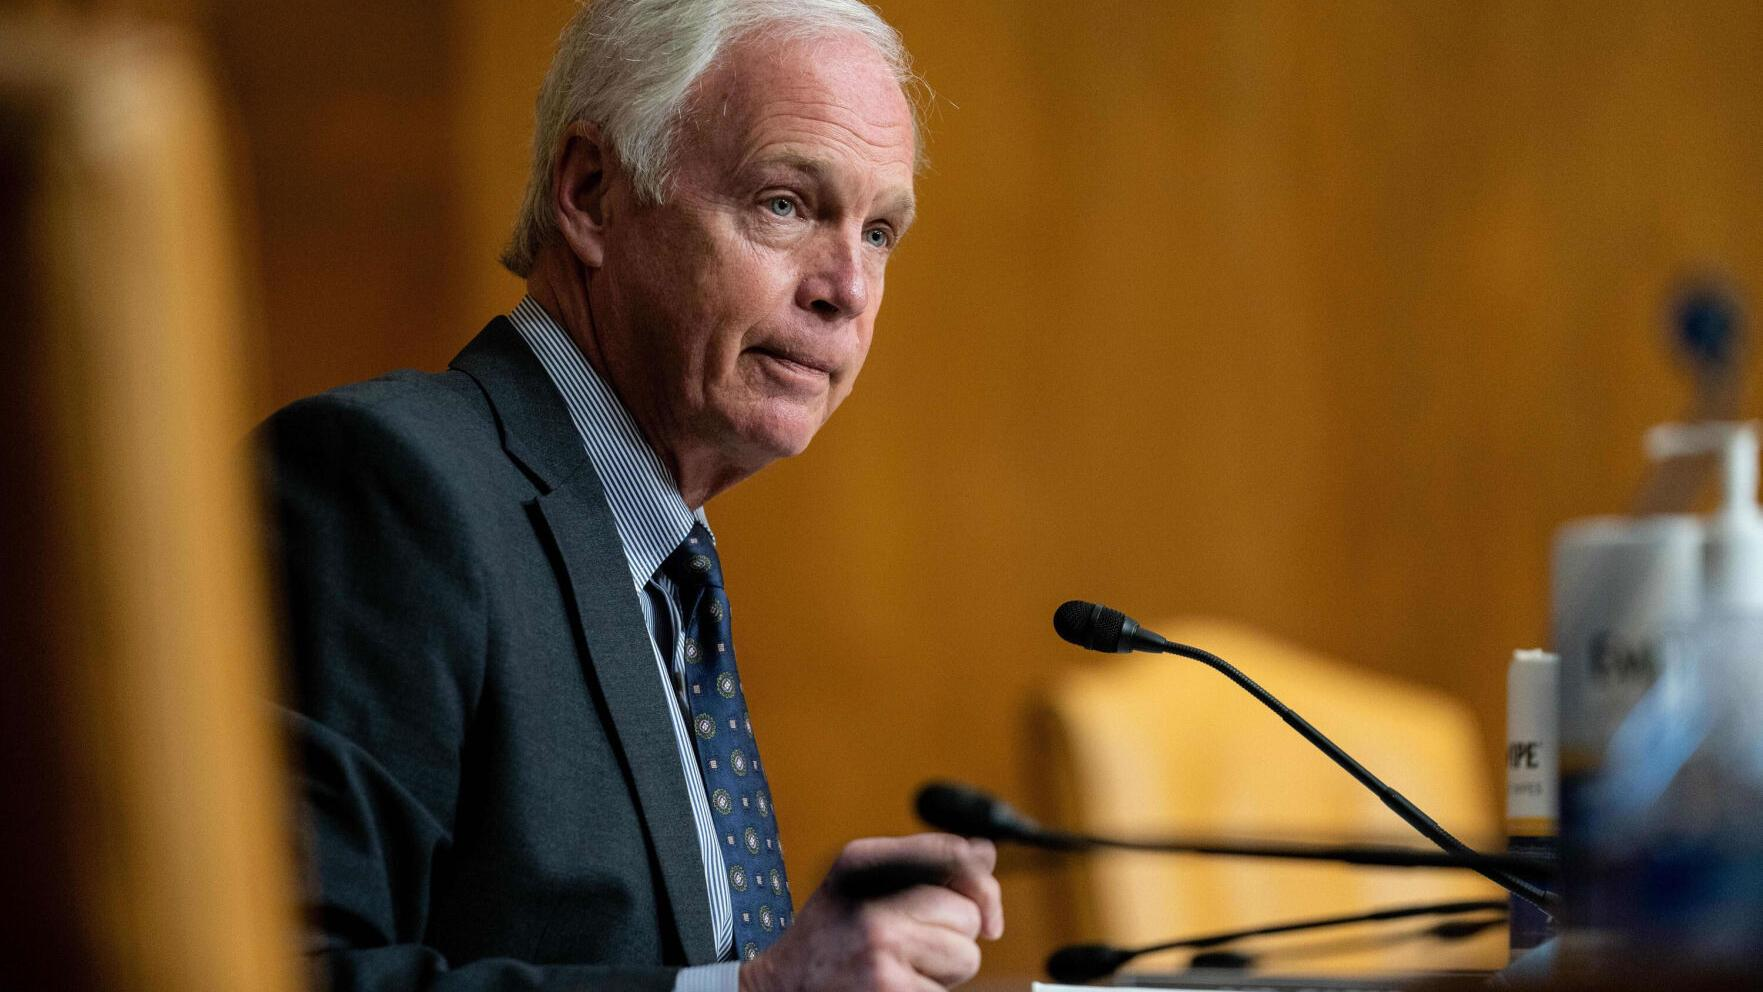 Sen. Ron Johnson's YouTube Account has been Suspended for Broadcasting a Video on Bogus Covid-19 Treatments